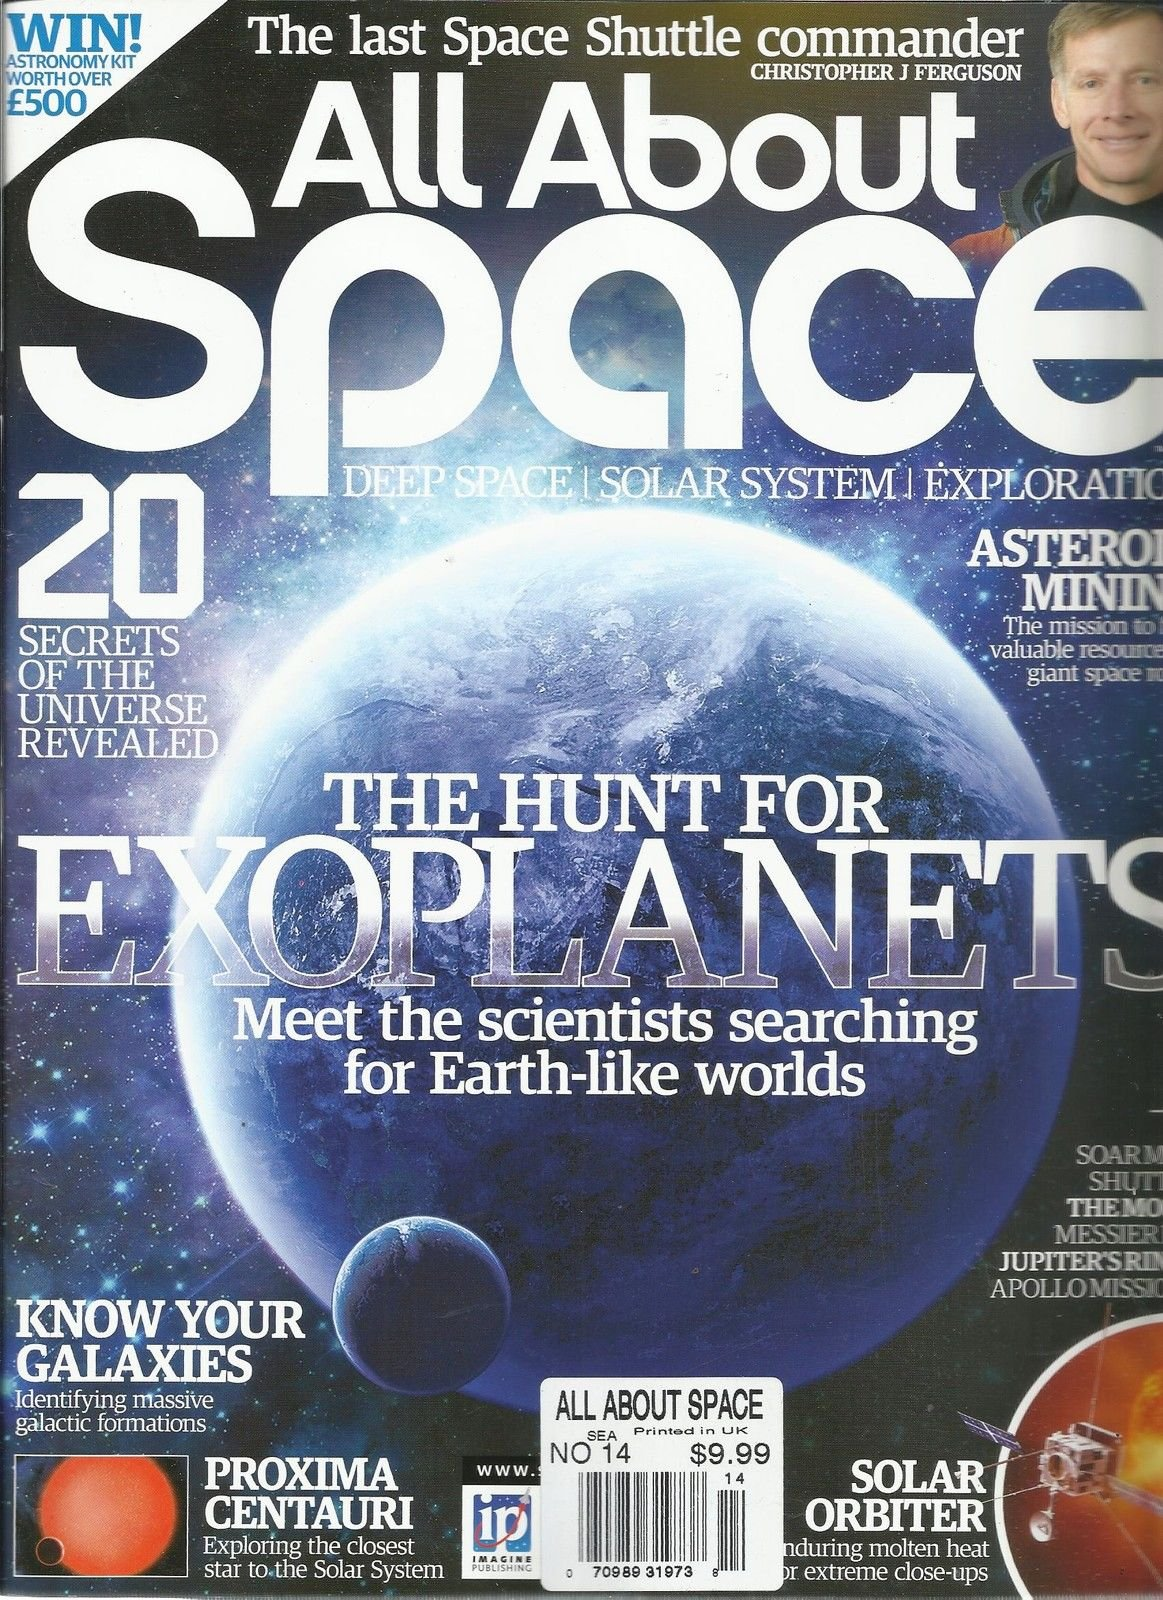 ALL ABOUT SPACE, NO.14 (DEEP SPACE SOLAR SYSTEM EXPLORATION * THE LAST SPACE